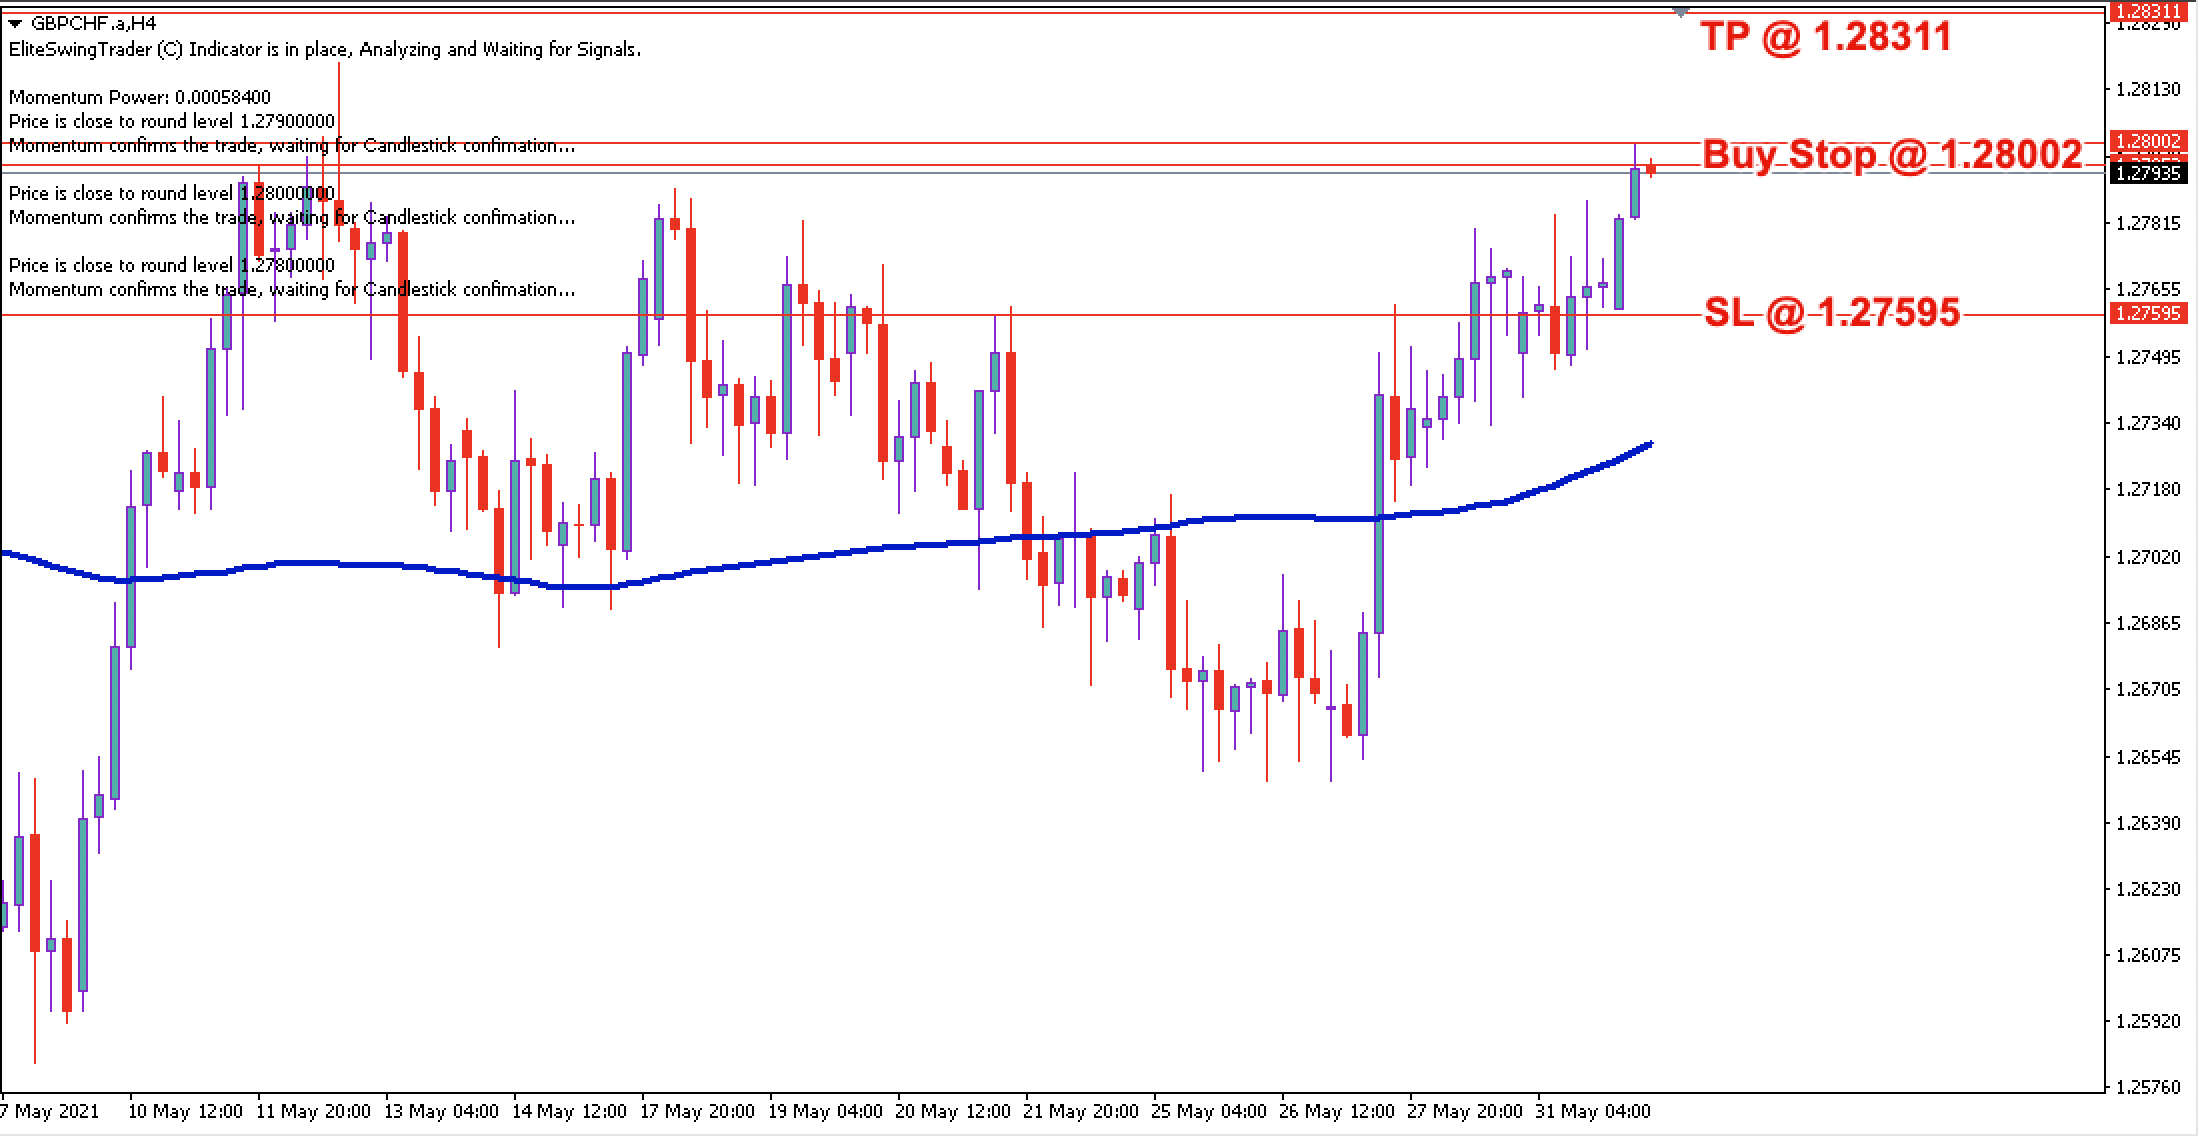 GBPCHF Daily Price Forecast – 1st June 2021